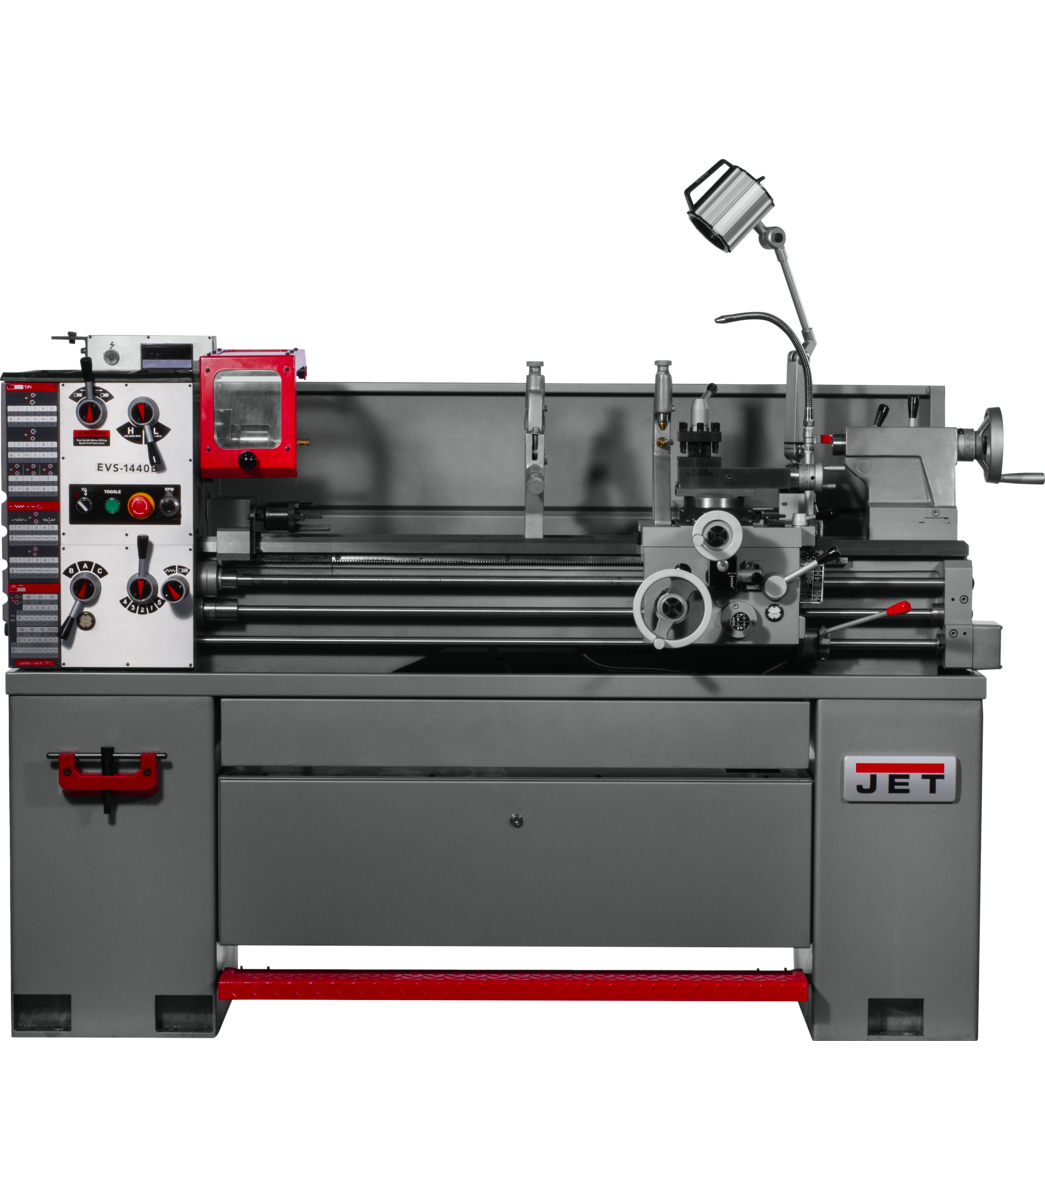 EVS-1440 Electronic Variable Speed lathe with Acu-Rite 203 DRO,3HP